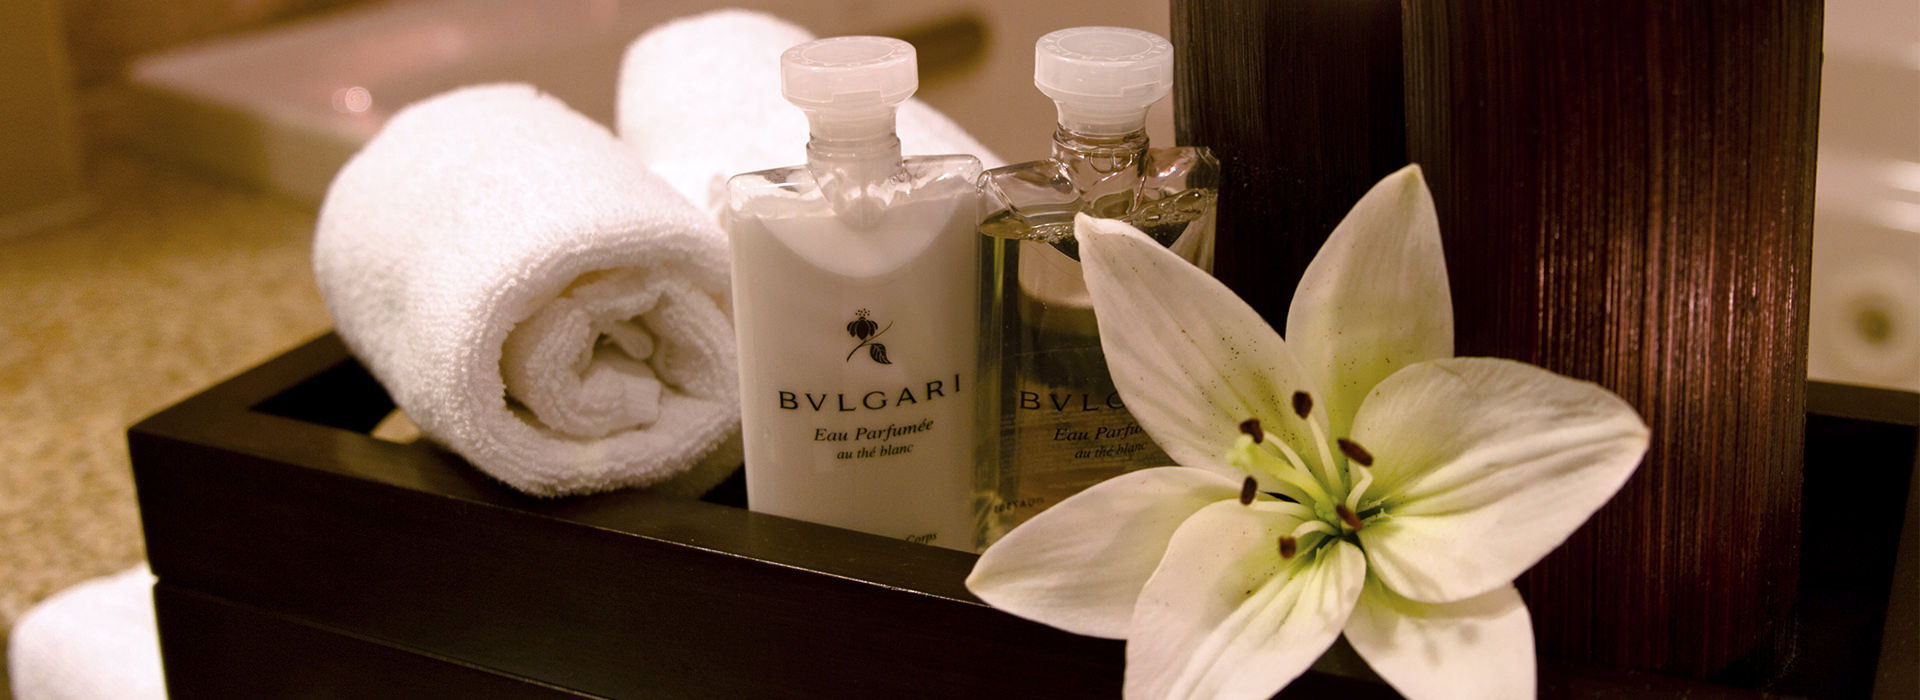 Bulgari amenities in Riviera Maya Resort